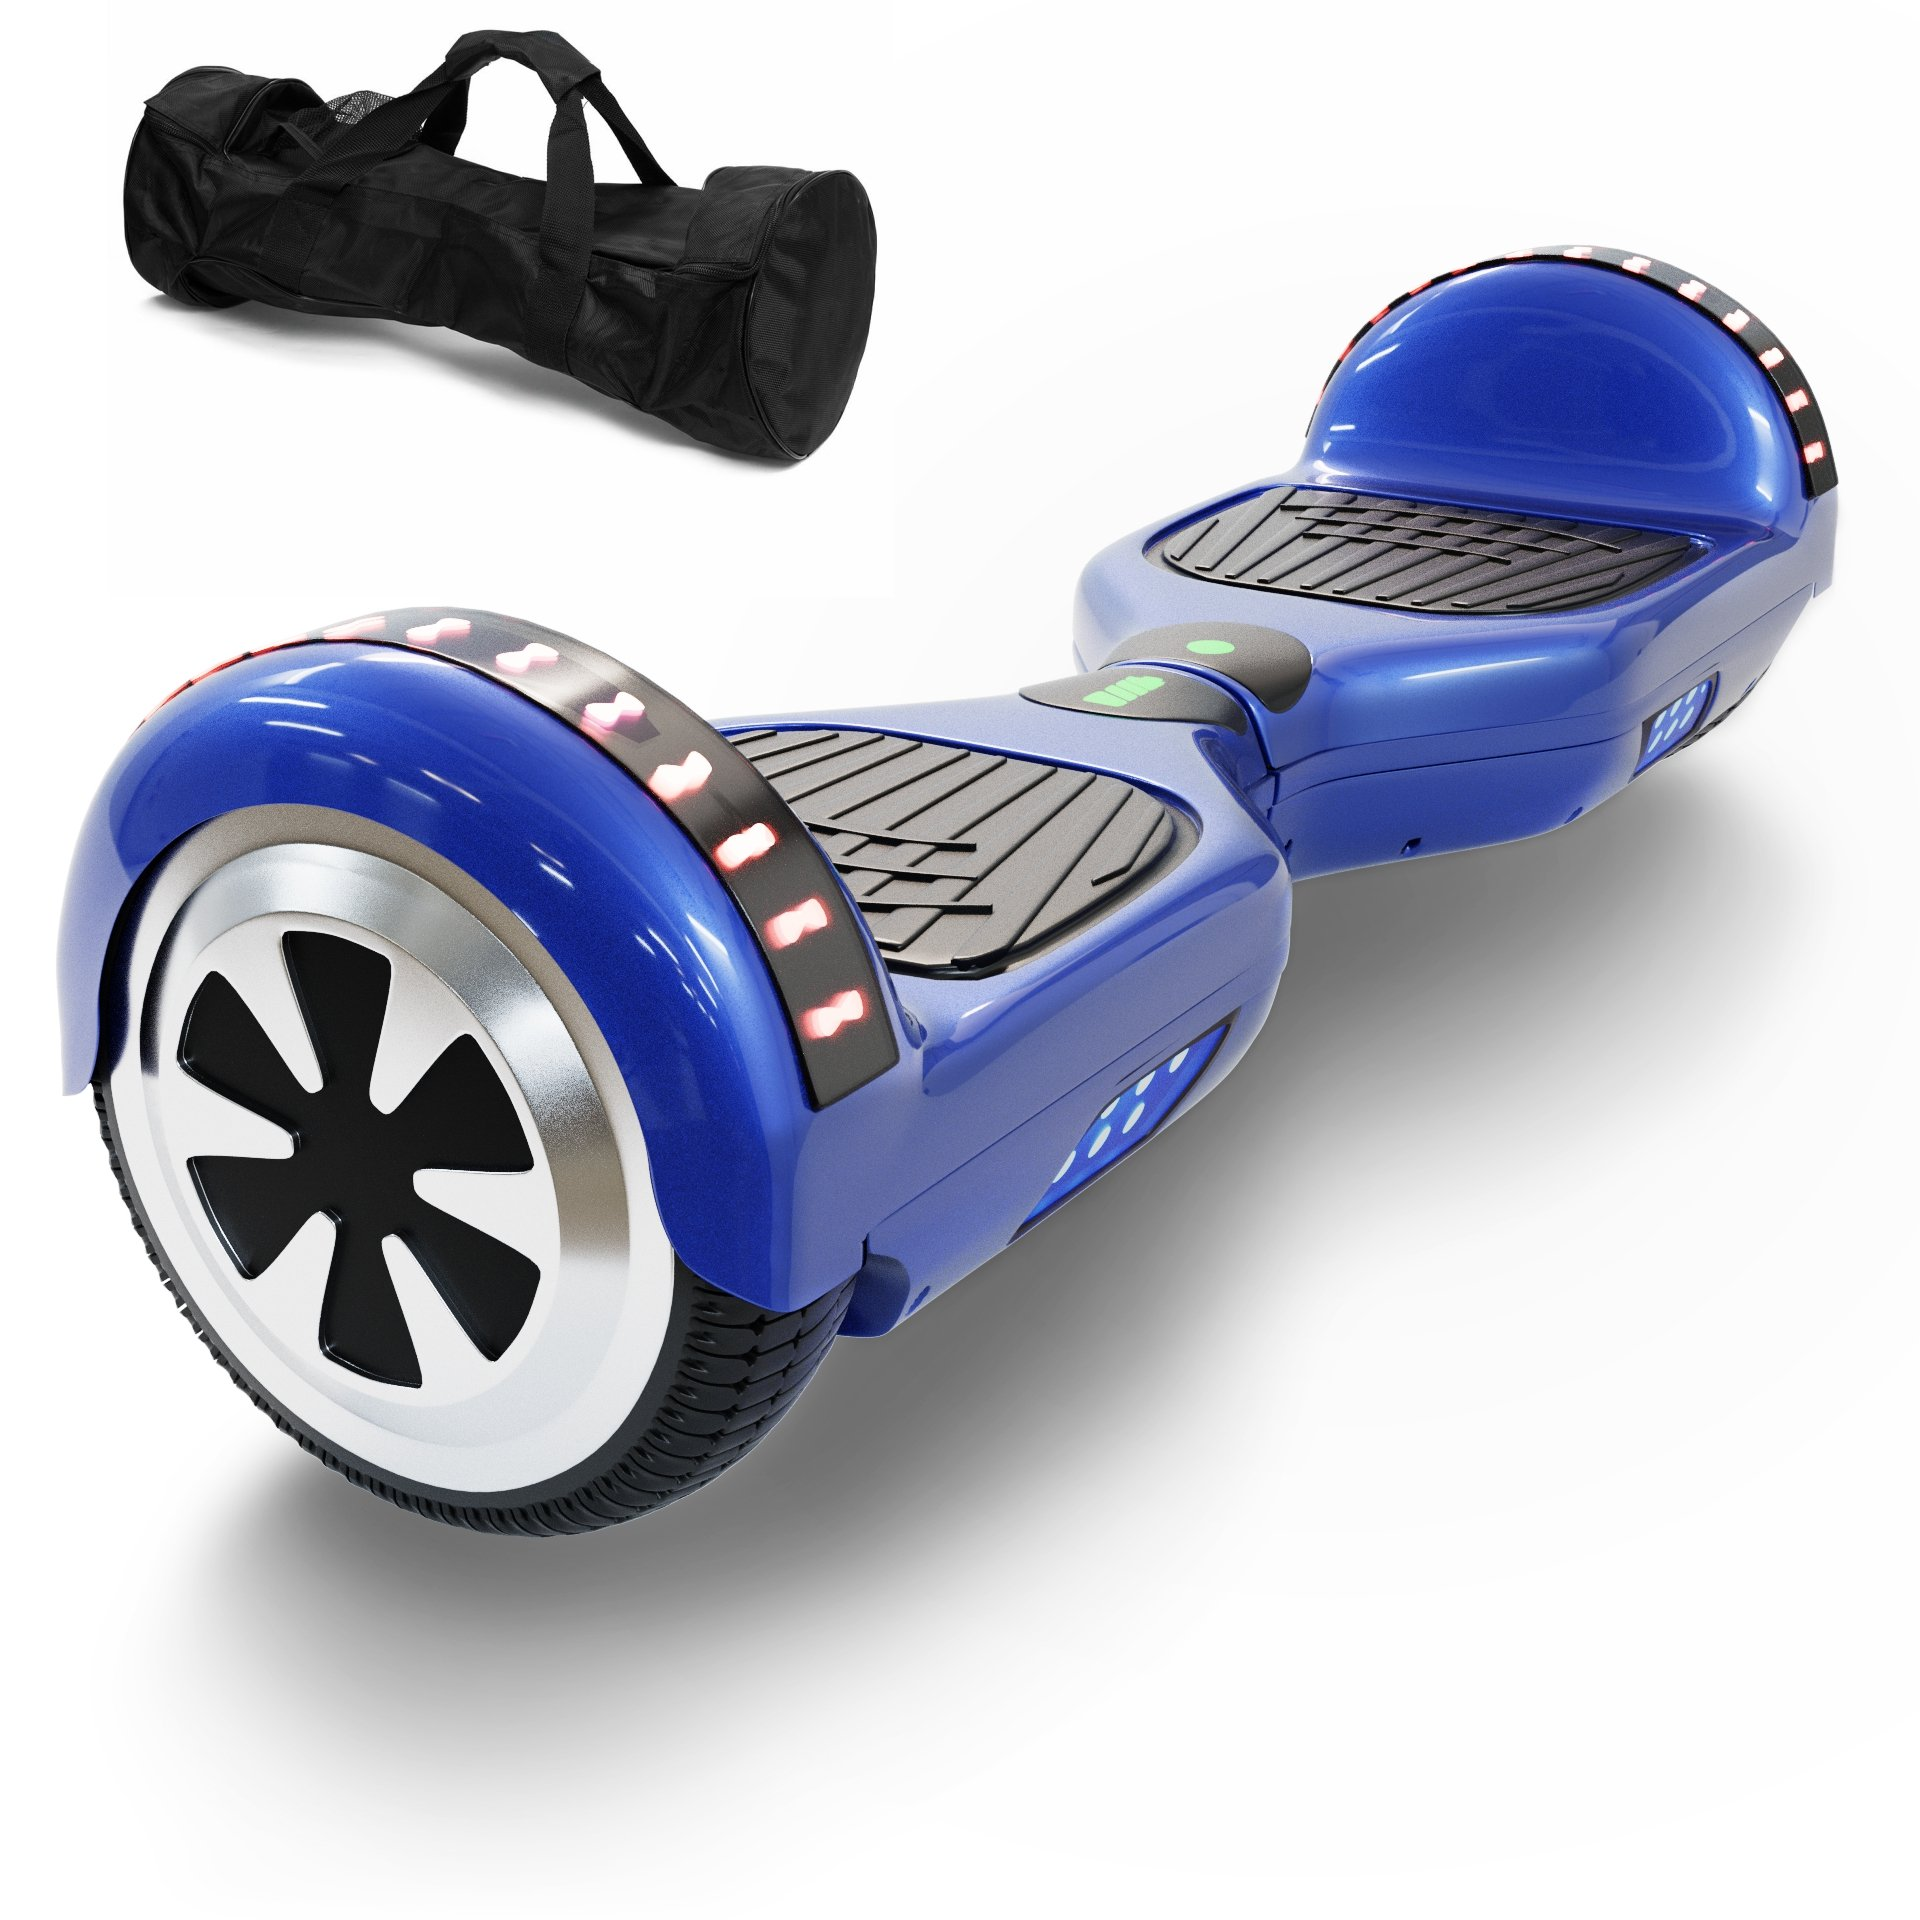 Hoverboard Self Balancing Scooter UL 2272 Certified with Powerful Bluetooth Speaker, Cool LED lights and FREE Portable Carrying Bag (Royal Blue) by CXInWalk